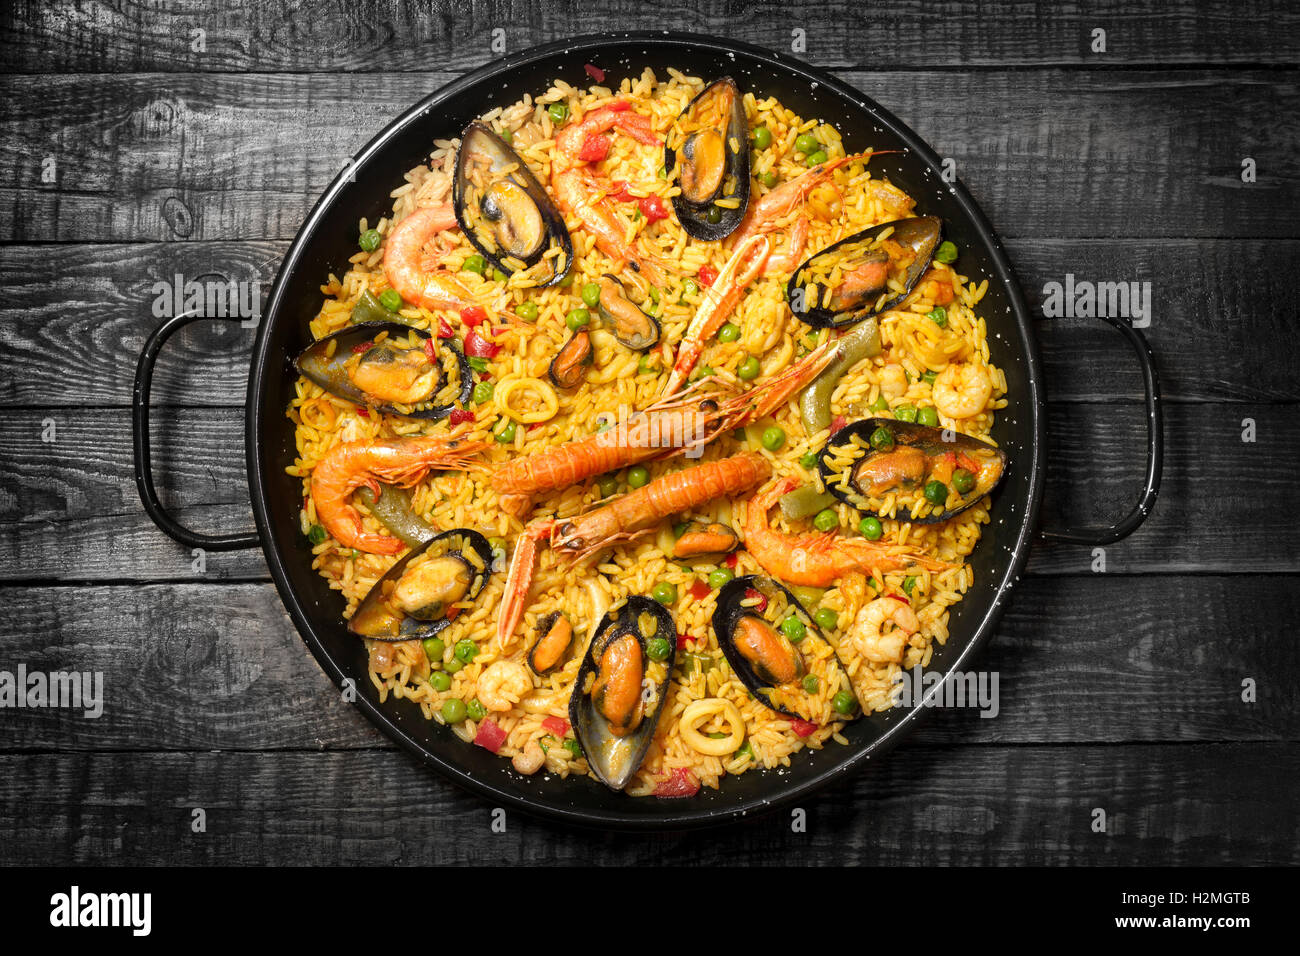 Spanish paella on a dark wooden table - Stock Image